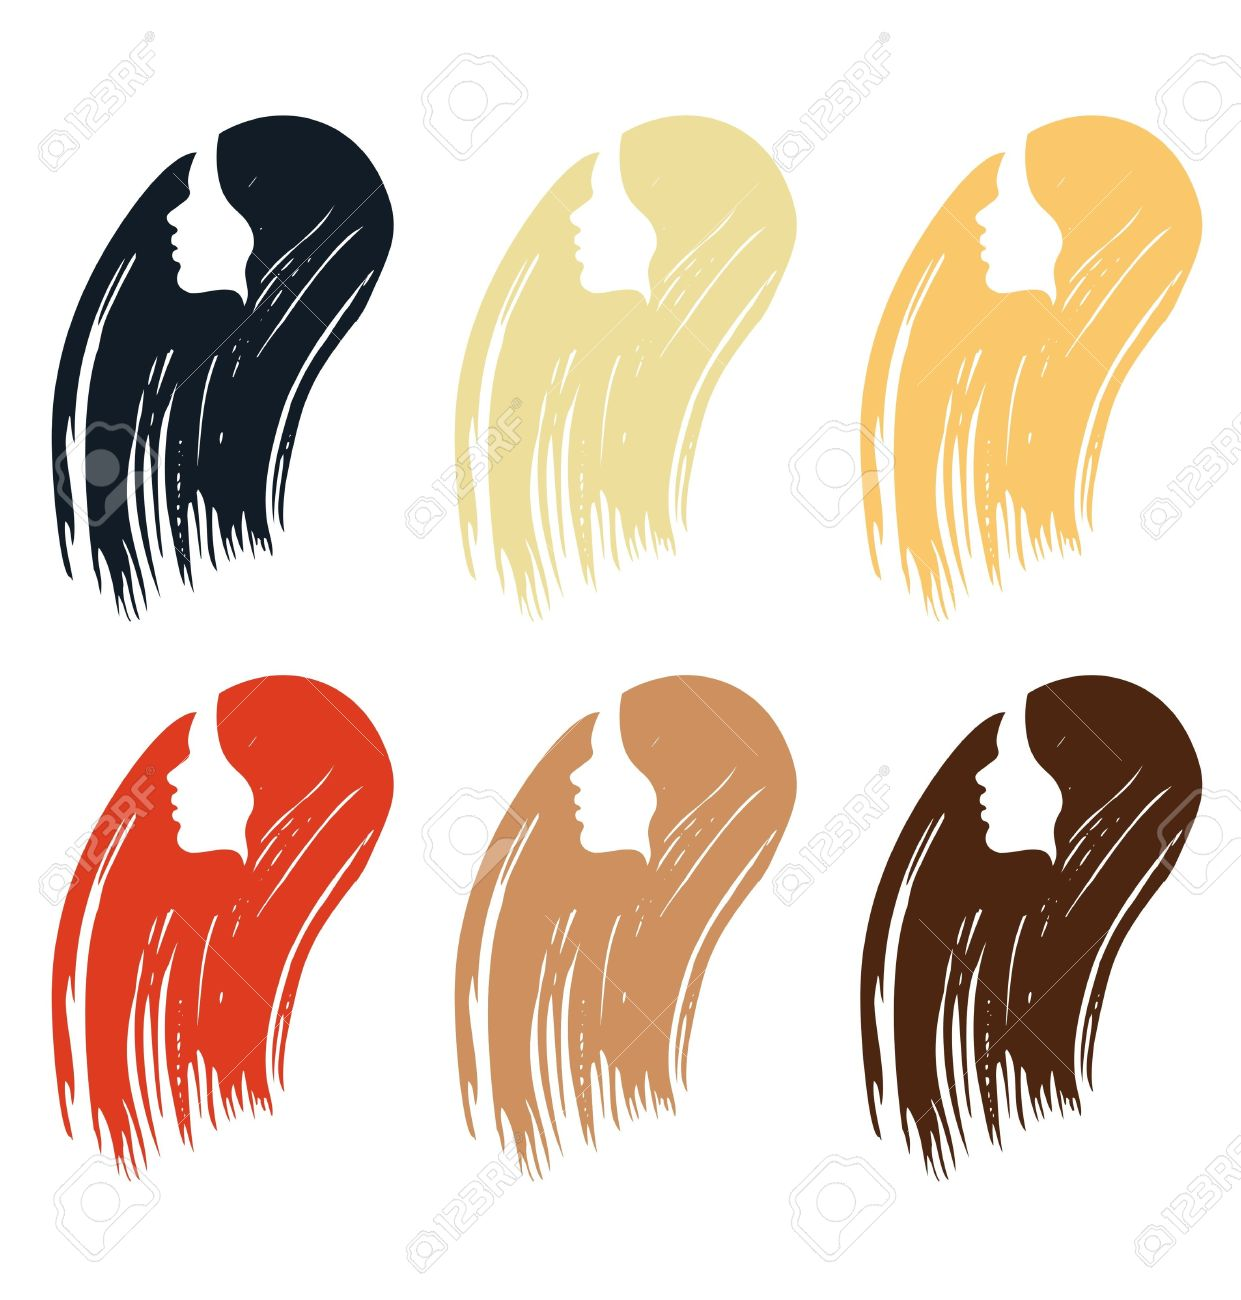 Hair Dying Clipart.